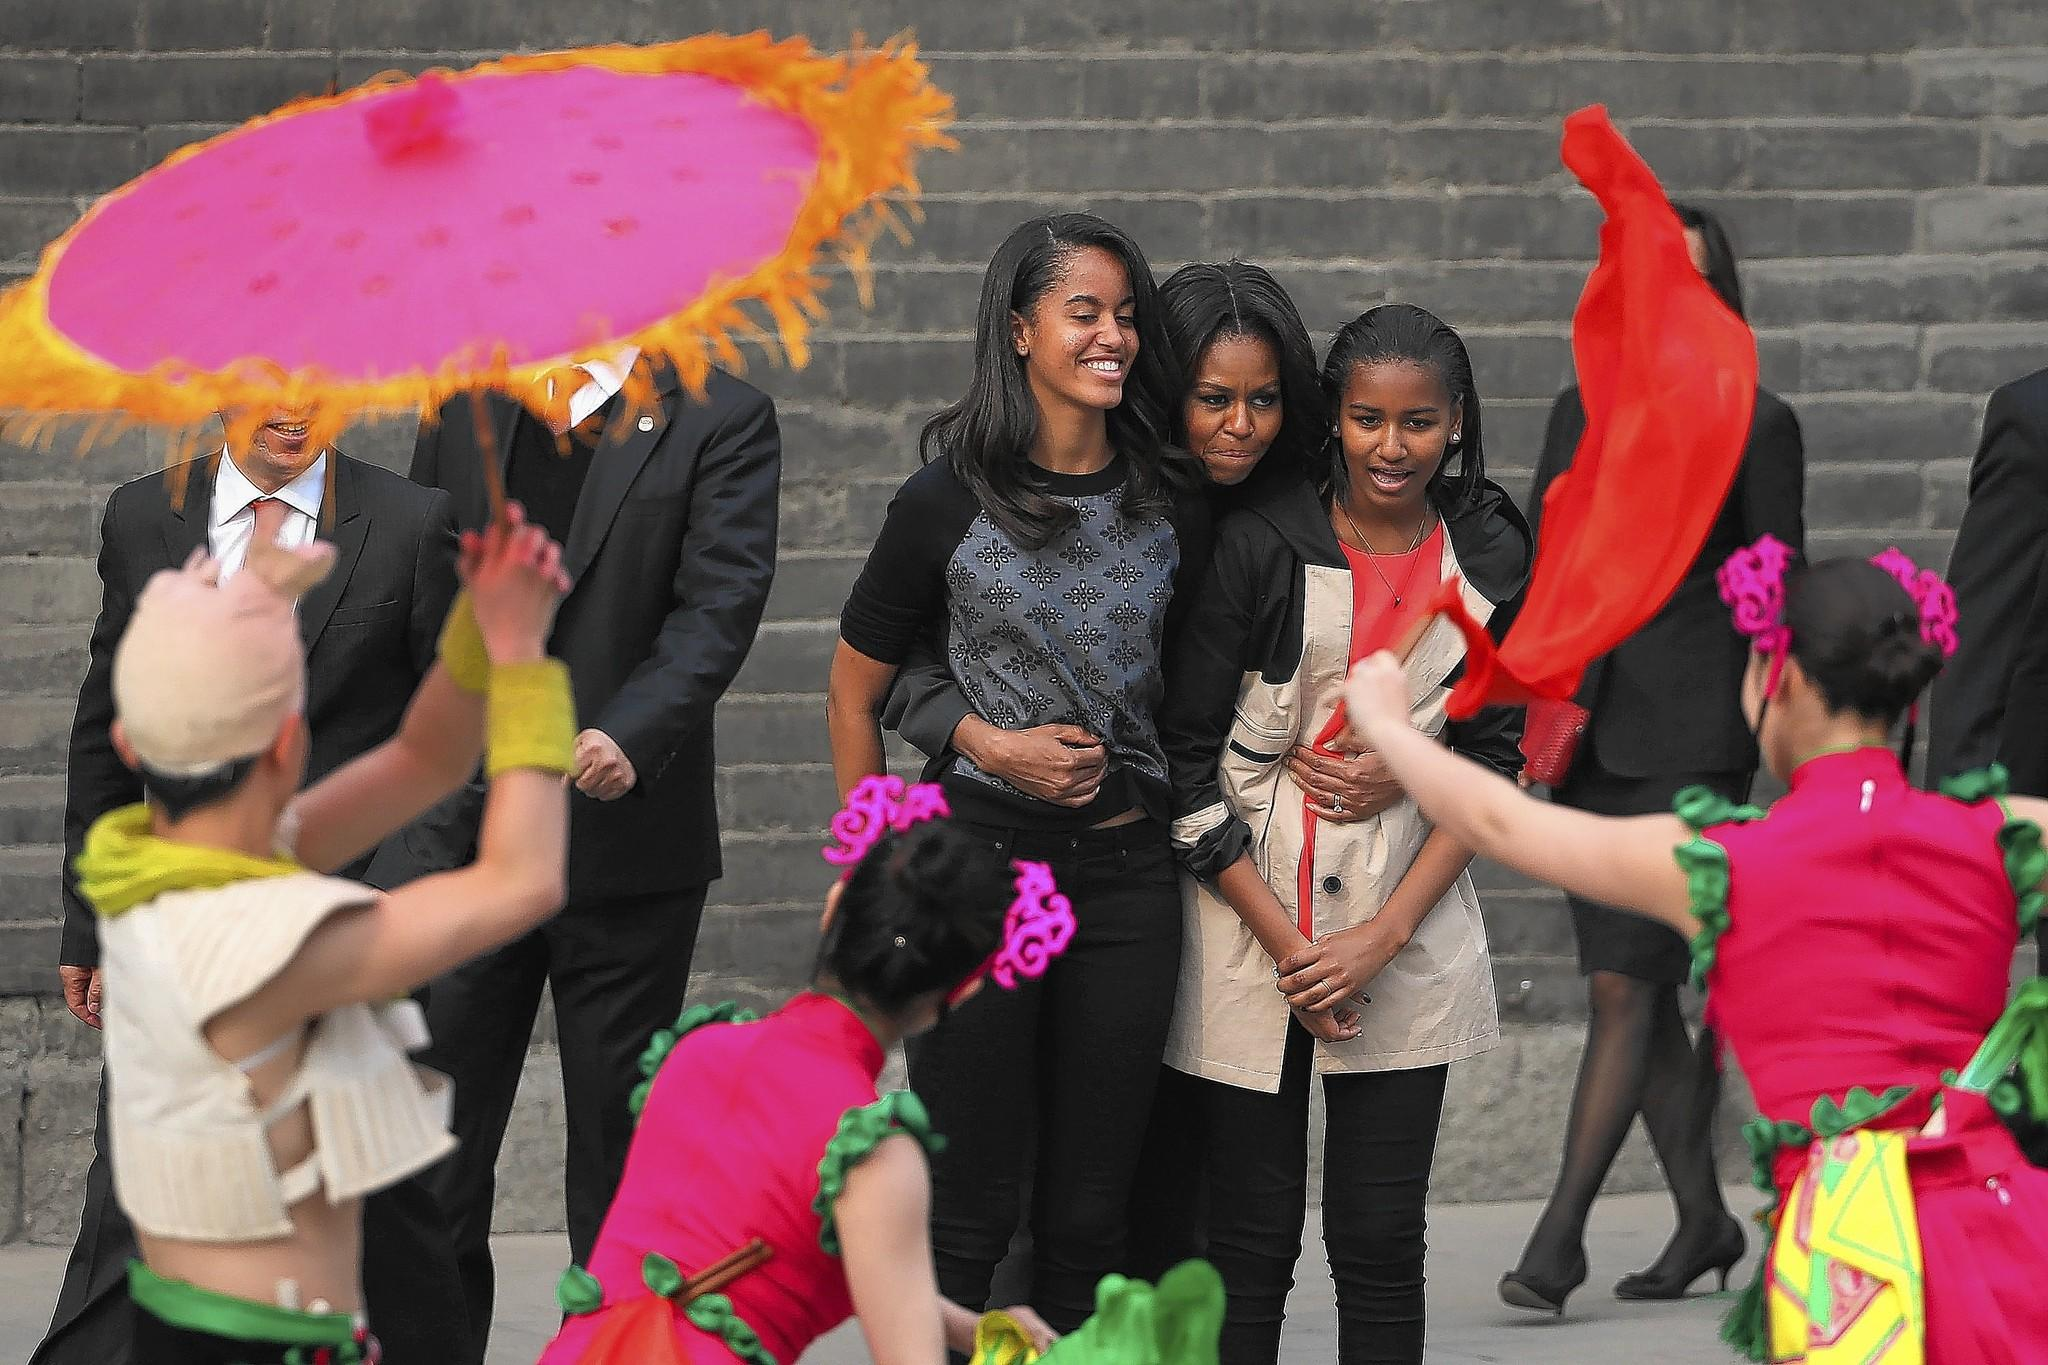 First lady Michelle Obama, center, and her daughters Malia, left, and Sasha visit the Xi'an City Wall on March 24 in Xi'an, China.